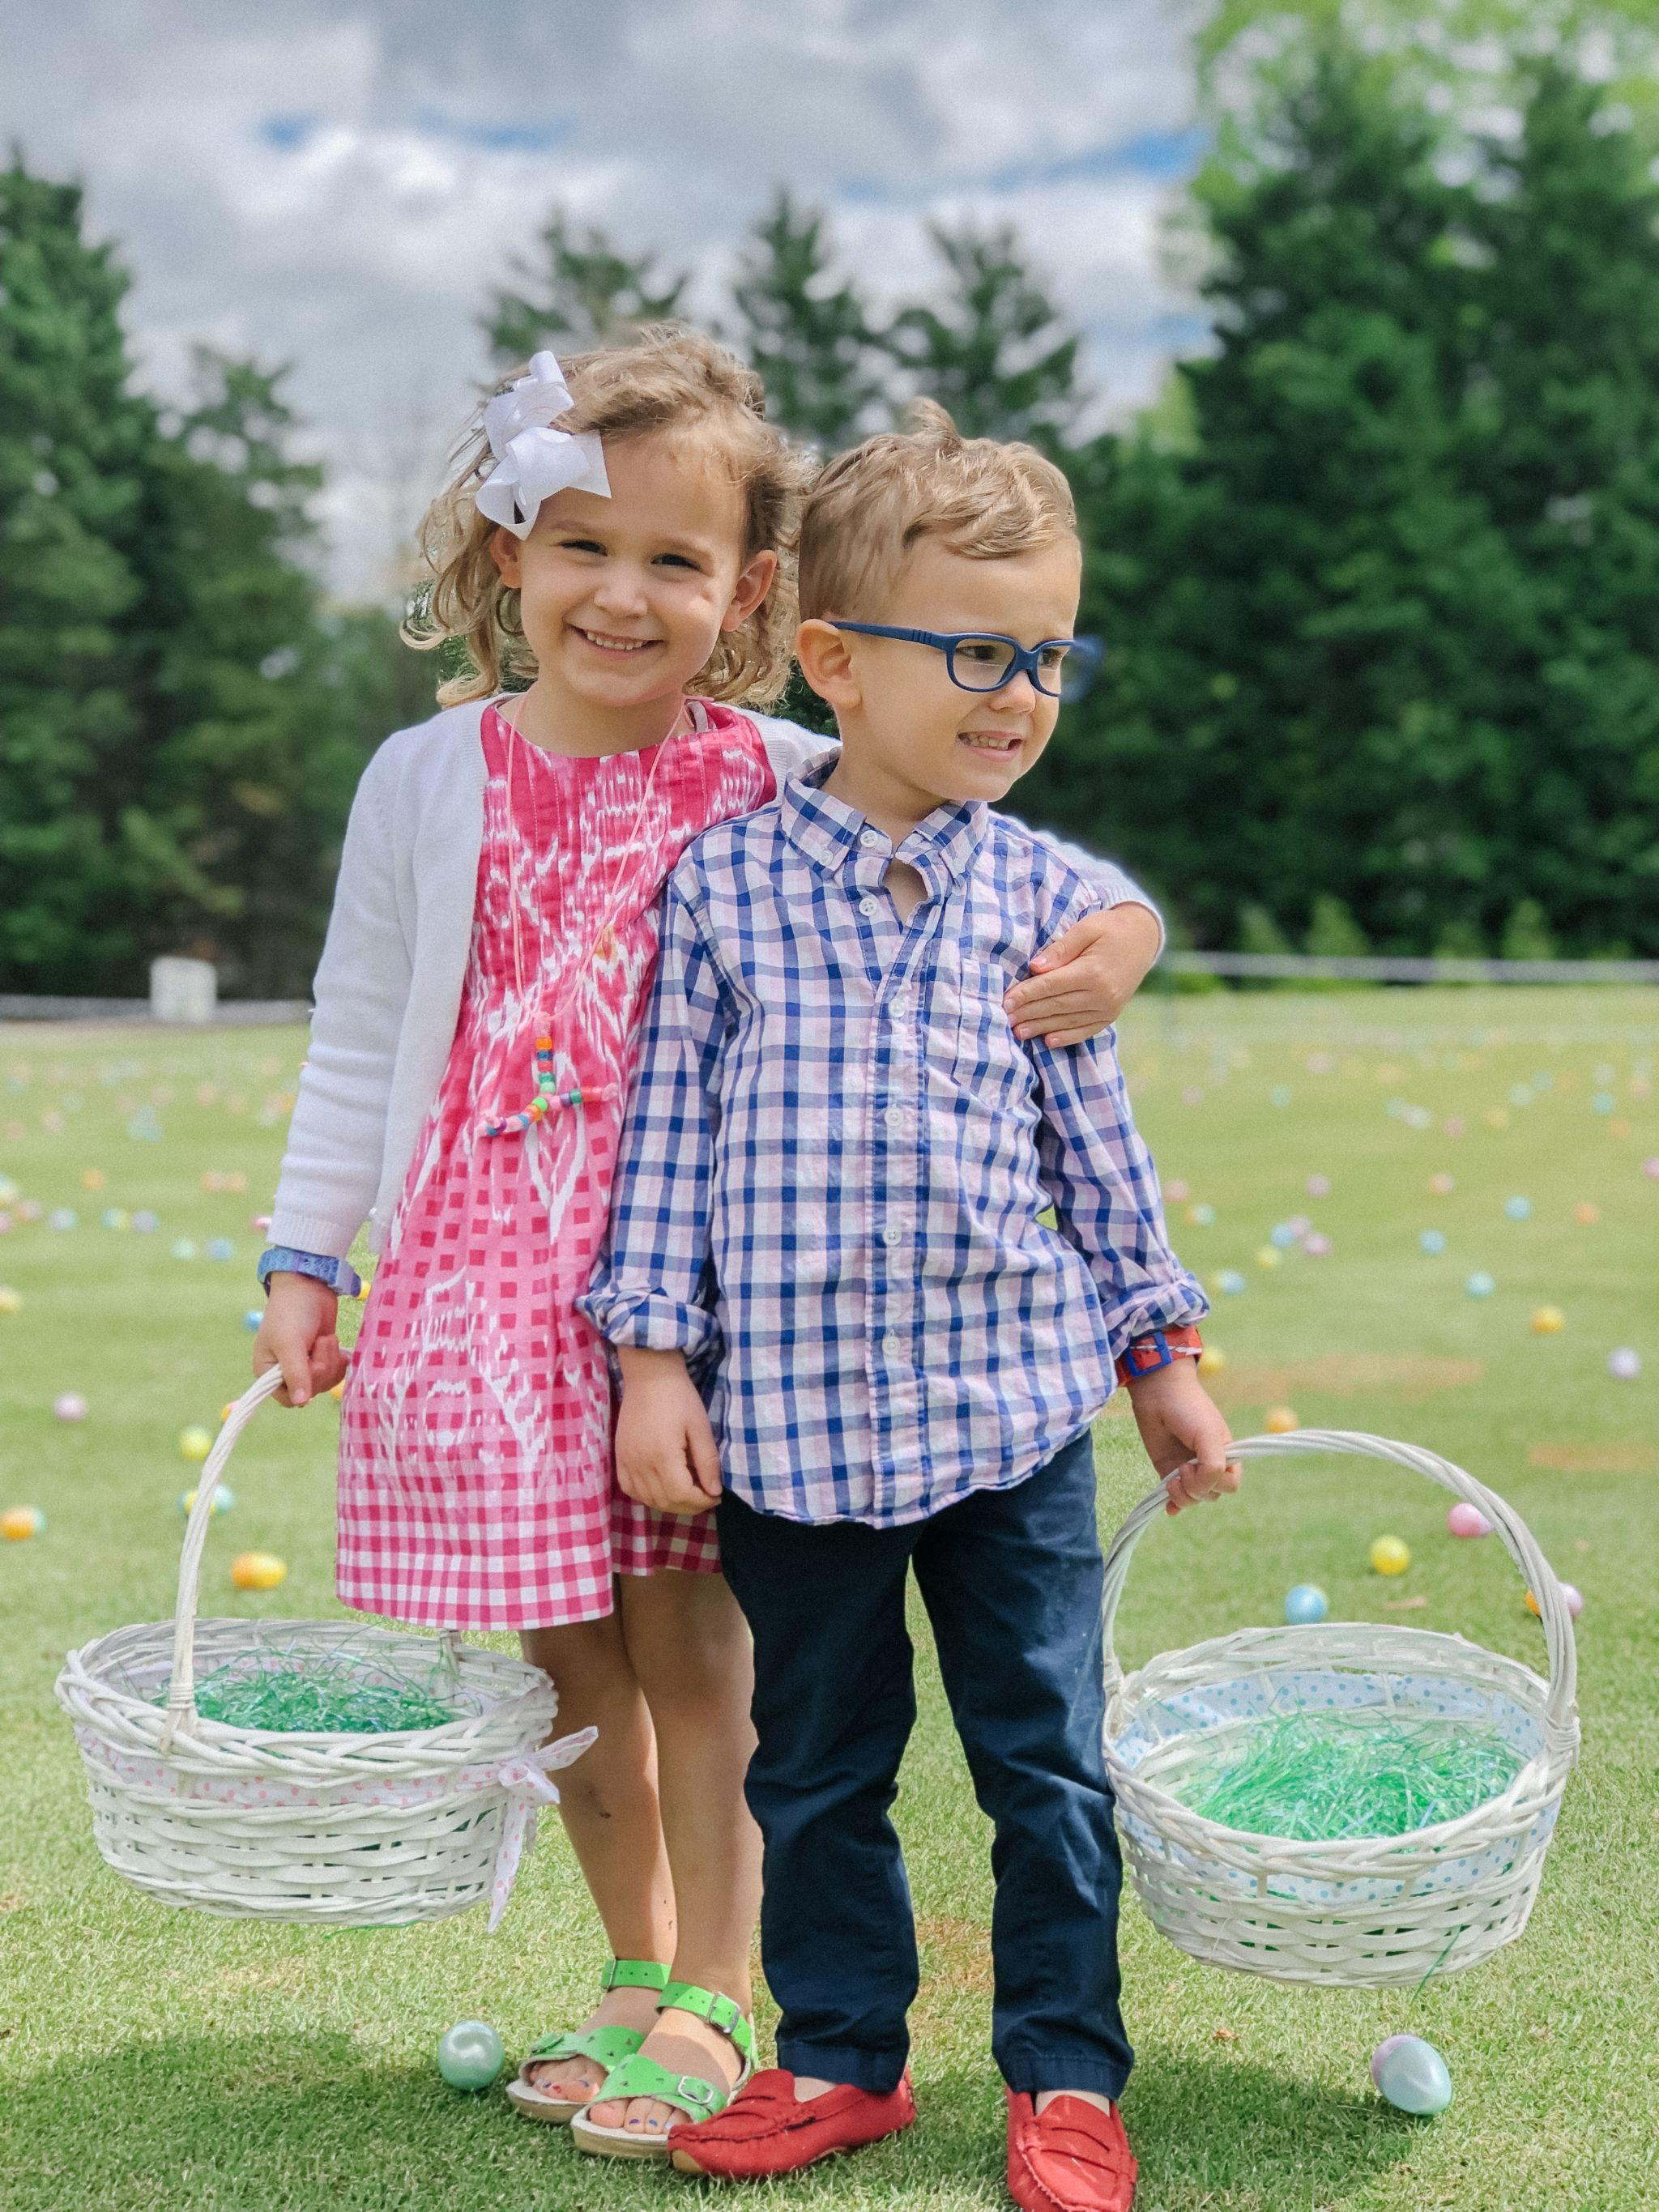 Amazon Easter: Basket & Egg Fillers + Outfits